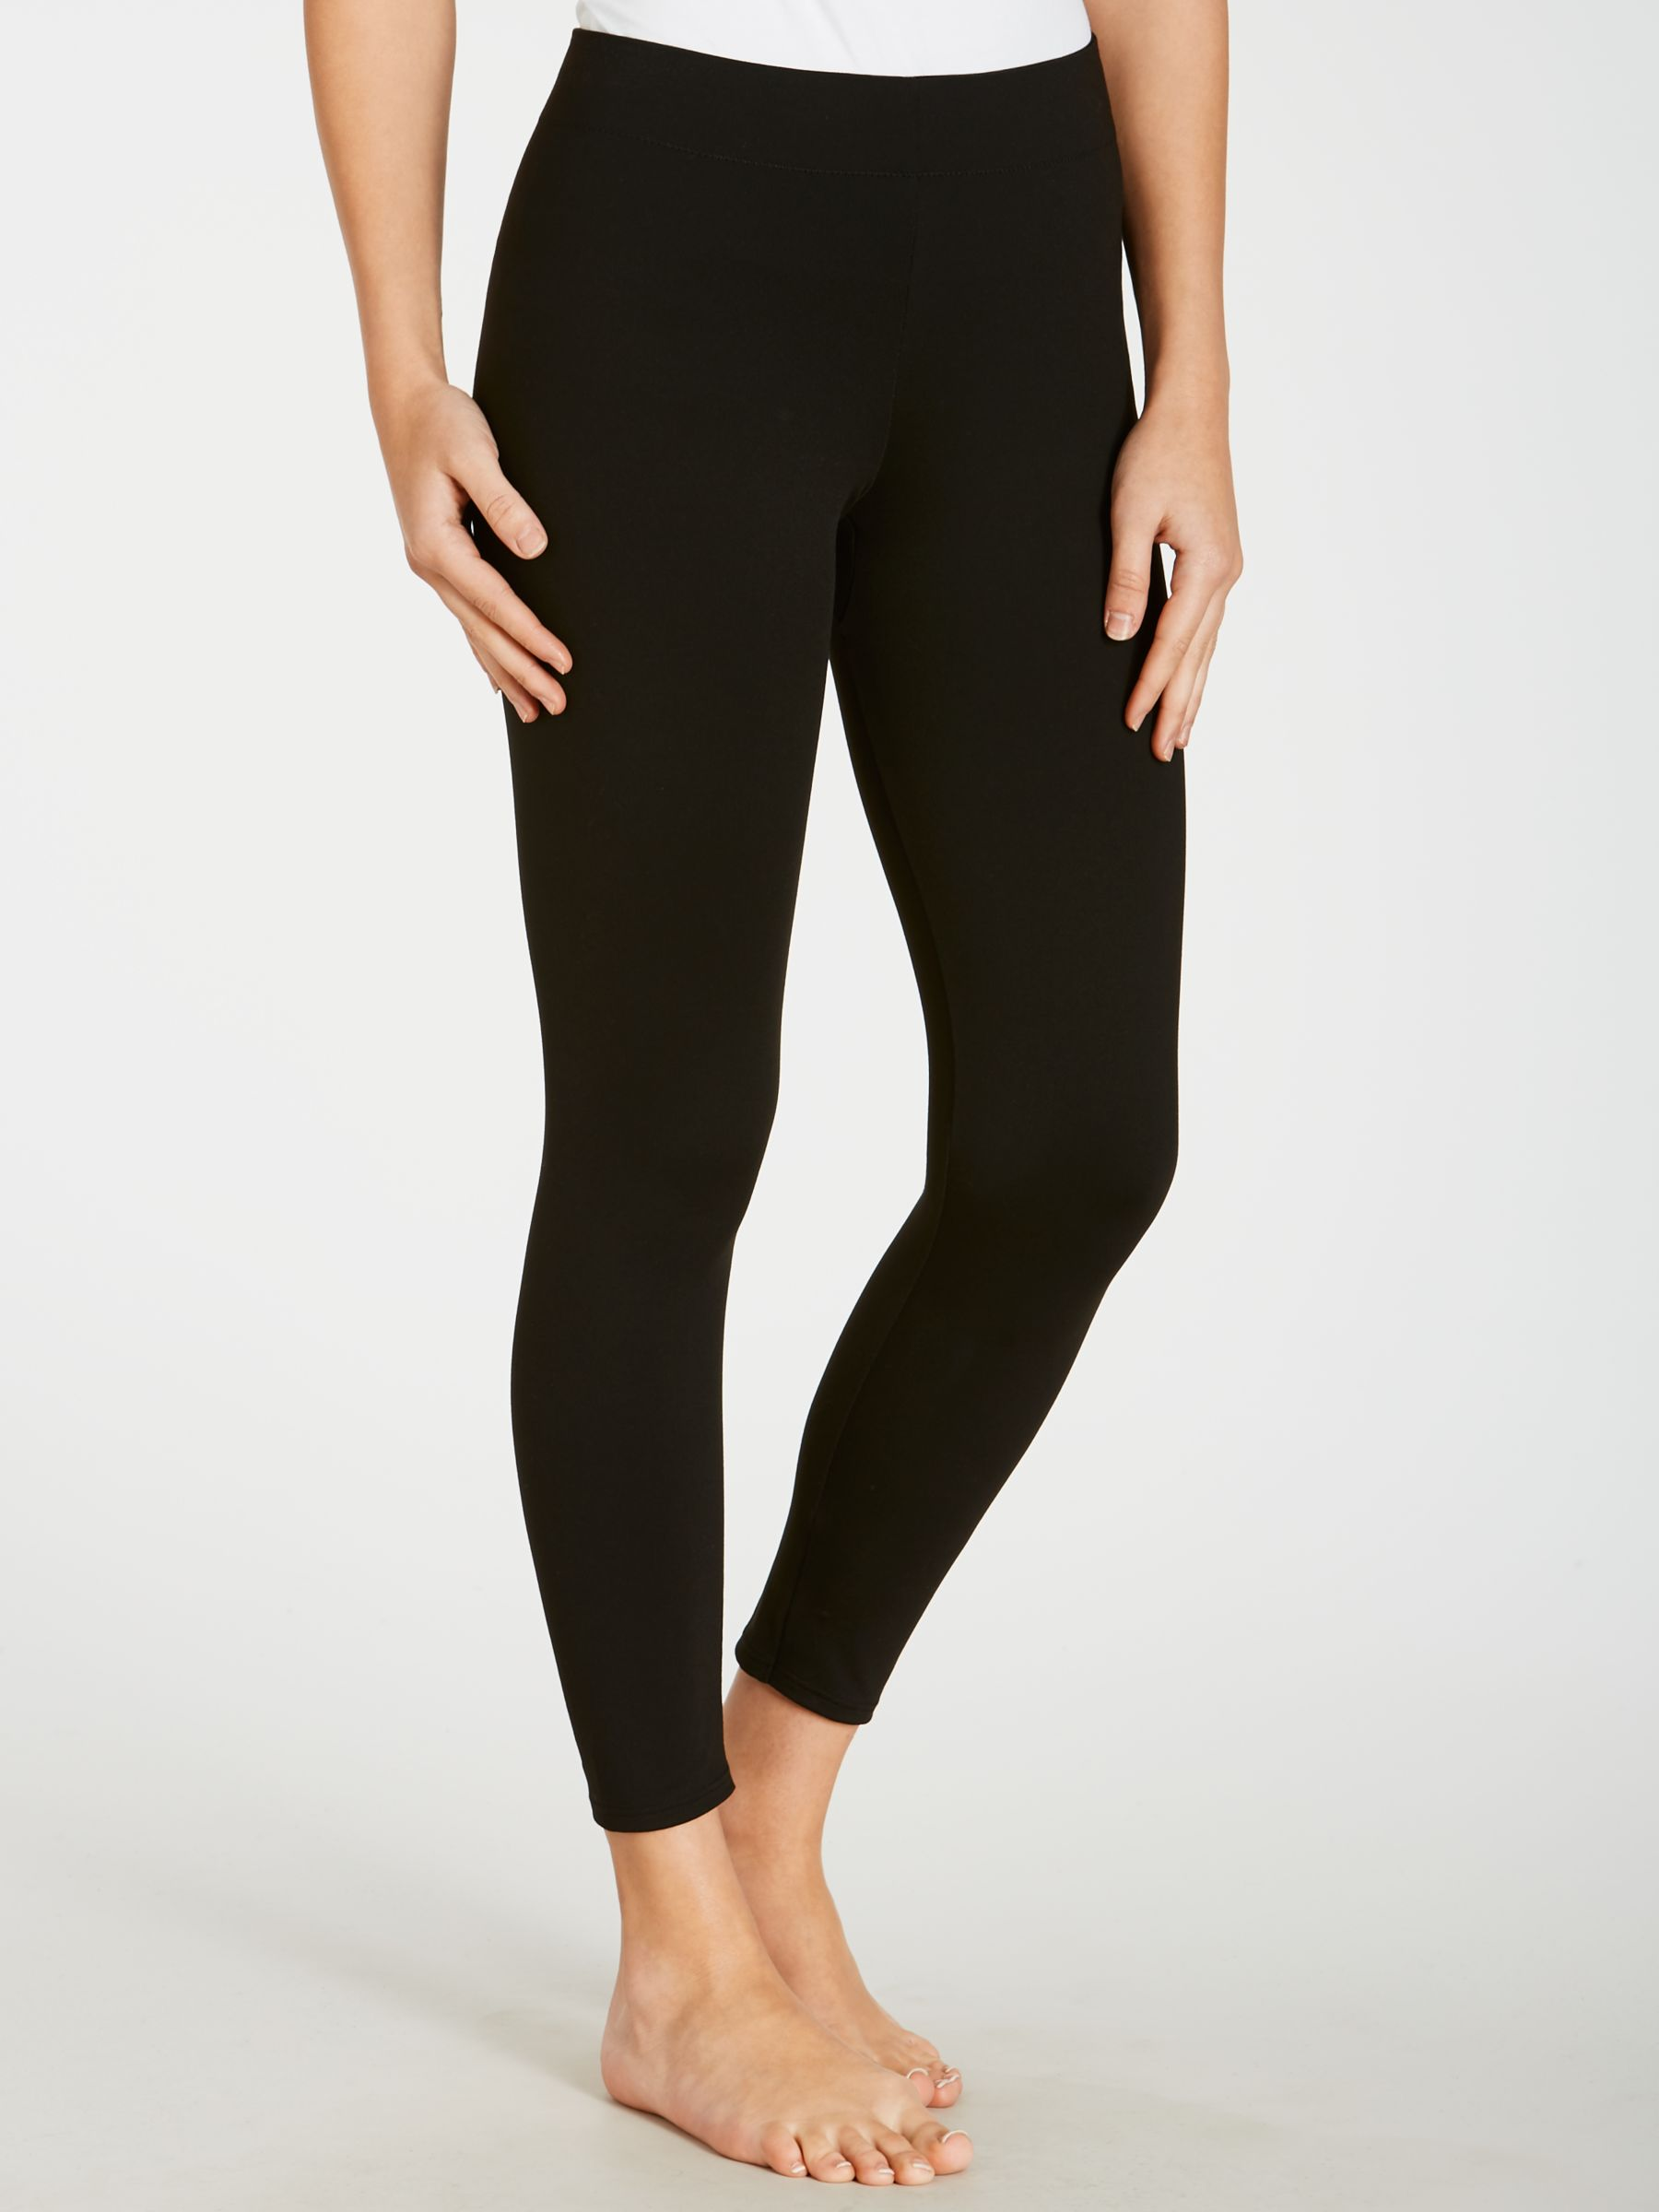 Maidenform Maidenform Firm Control Leggings, Black